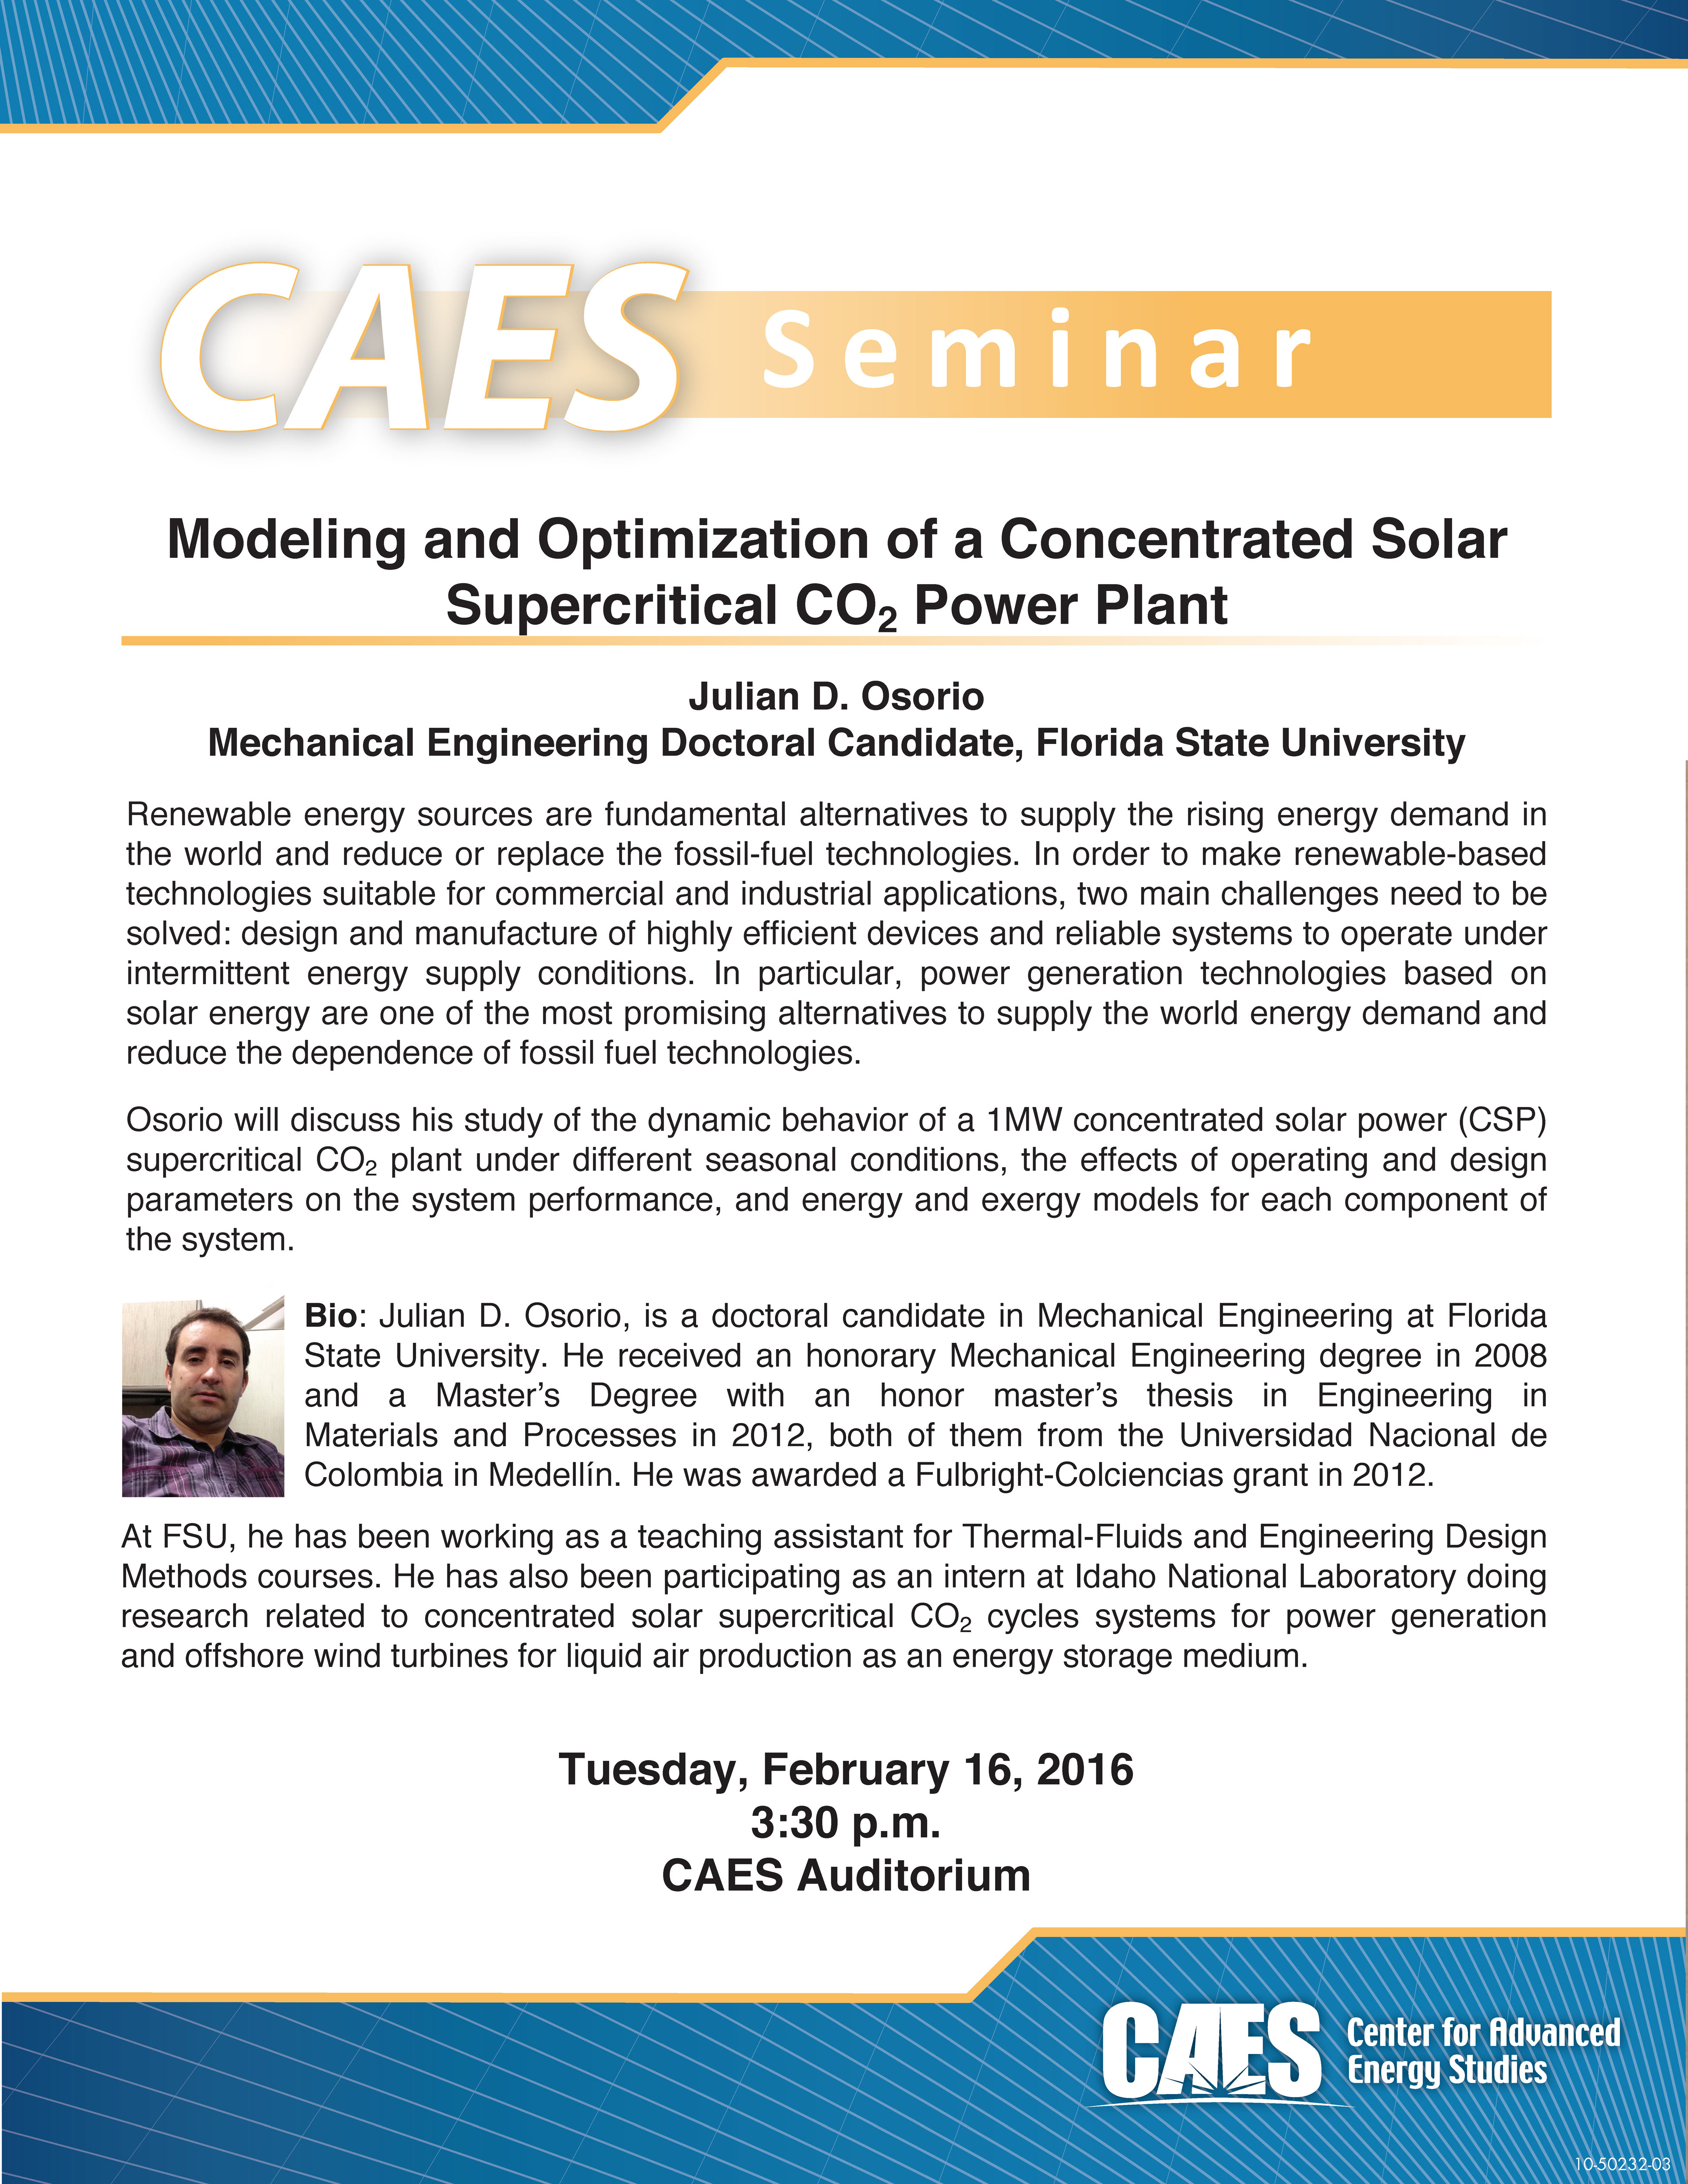 Modeling and Optimization of a Concentrated Solar Supercritical